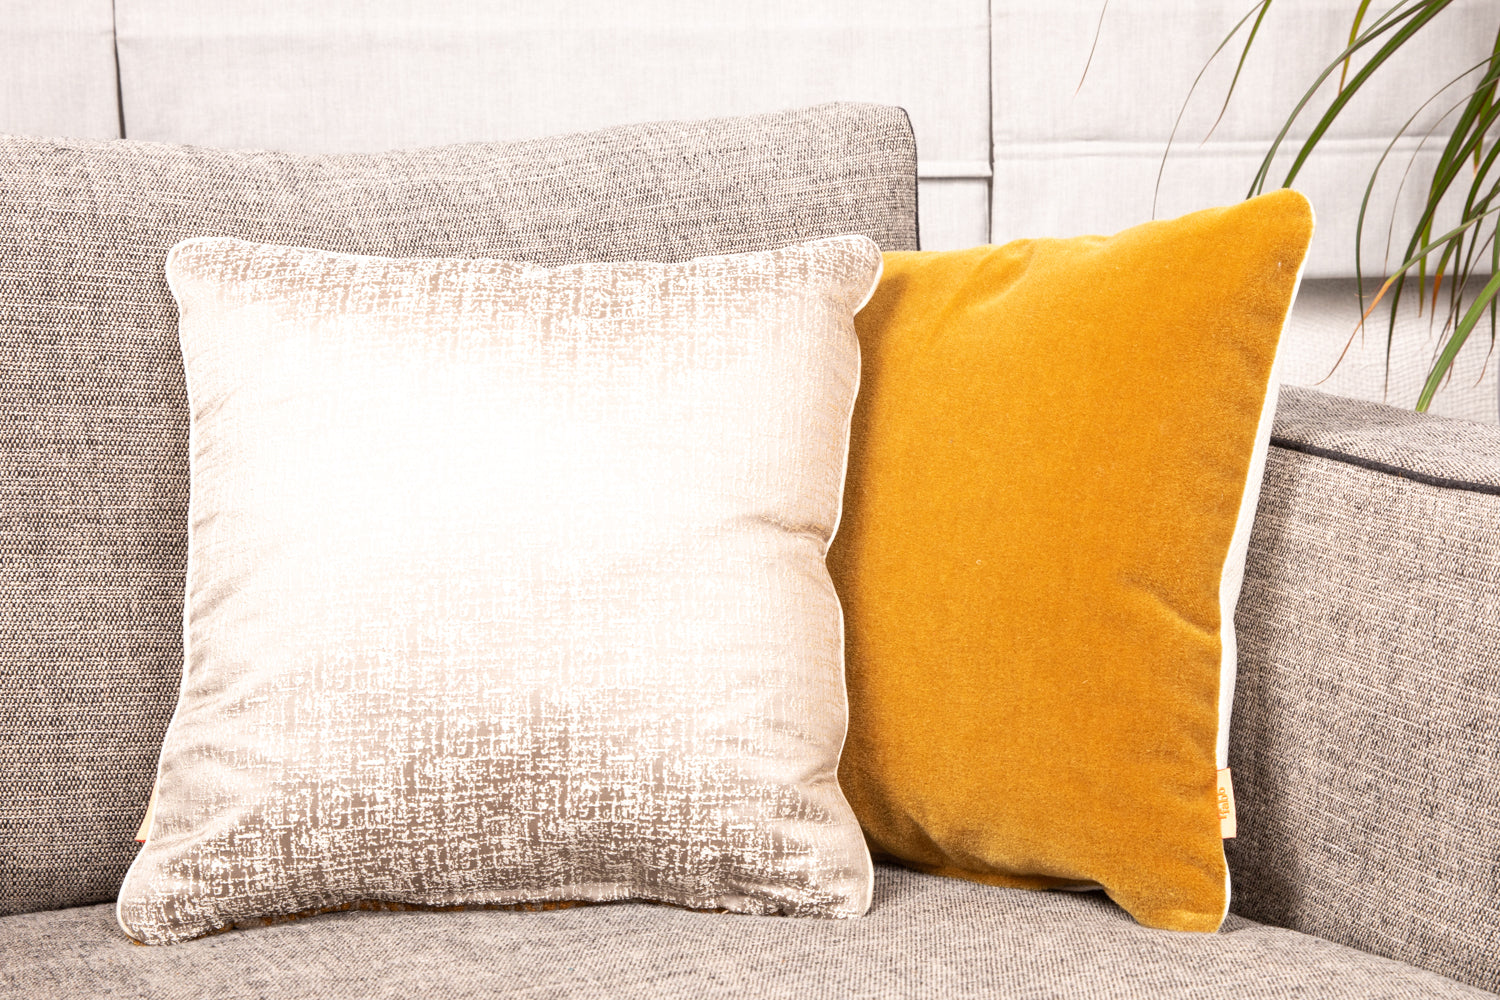 ffabb Velvet & Mohair piped trim toss pillows, Robert Allen Design fabrics